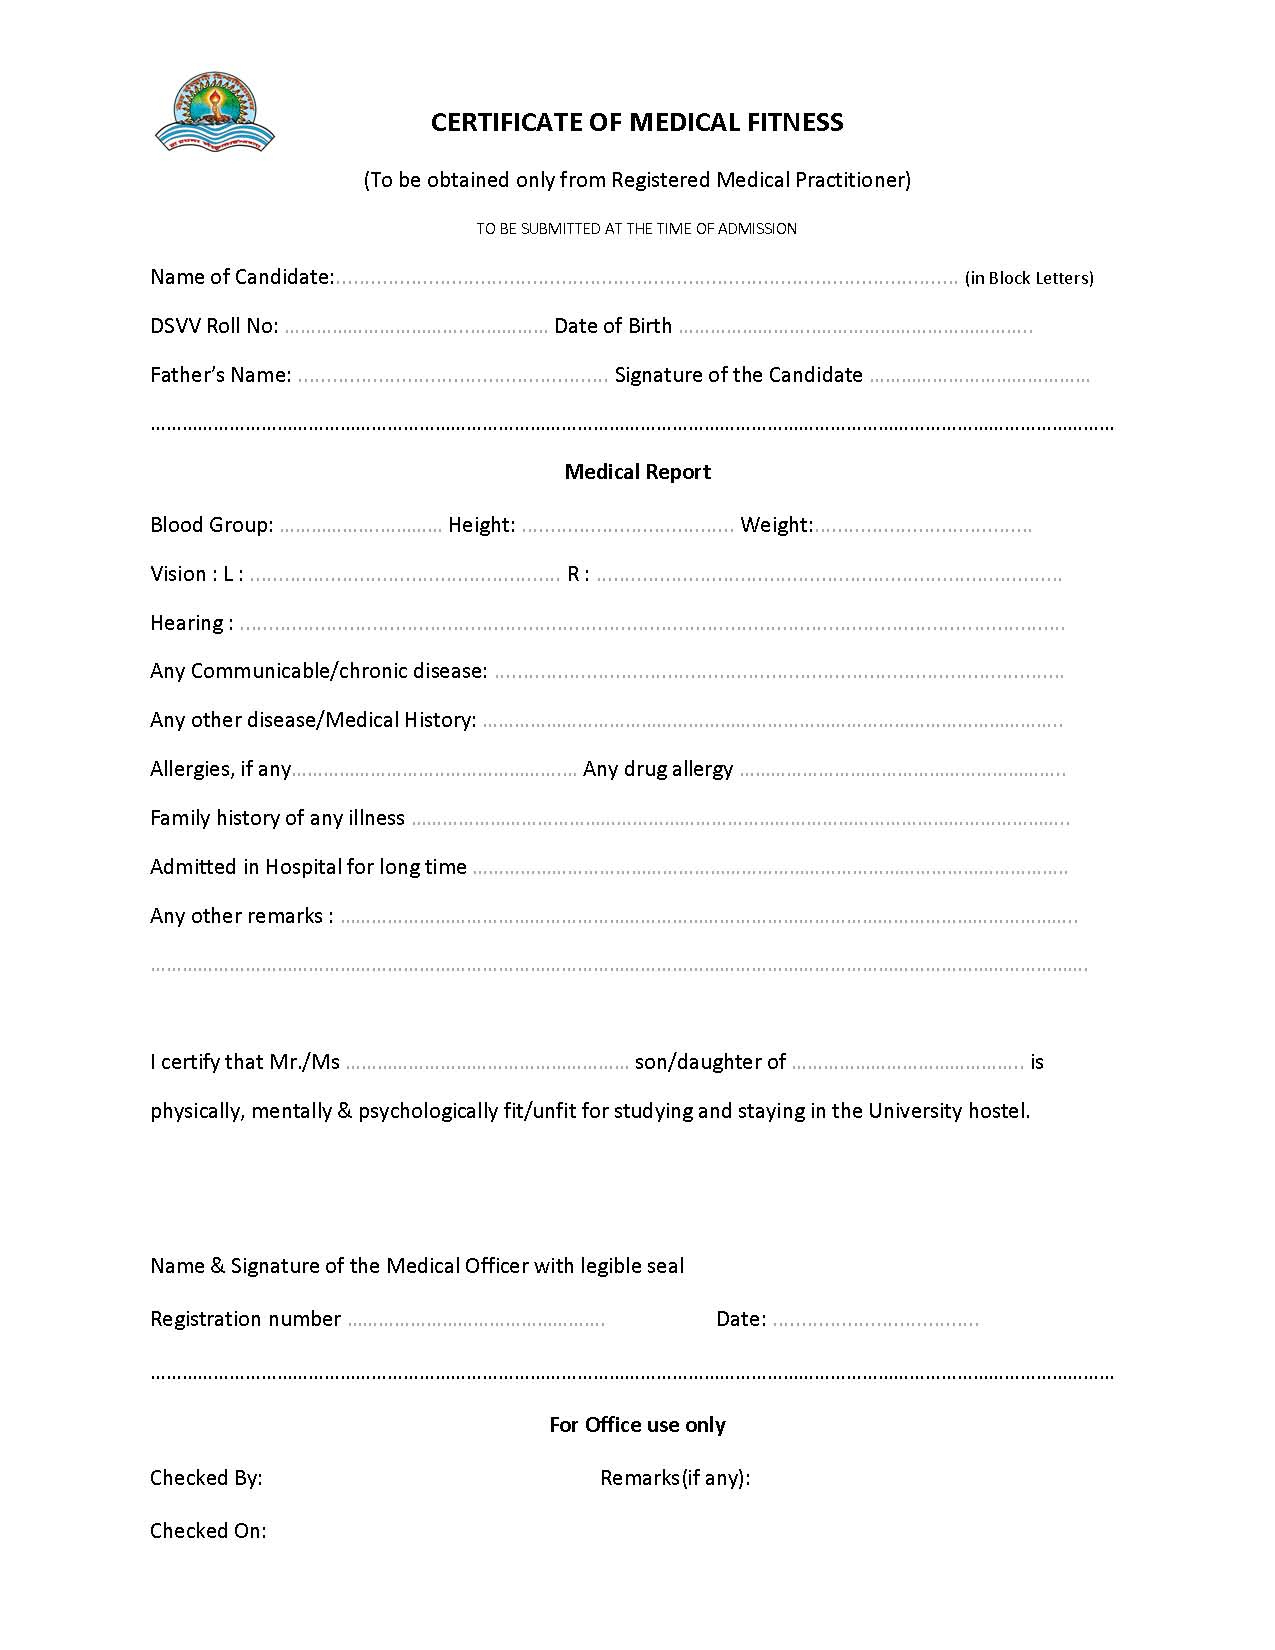 Medical Fitness Certificate  Wanew pertaining to Quality Physical Fitness Certificate Templates